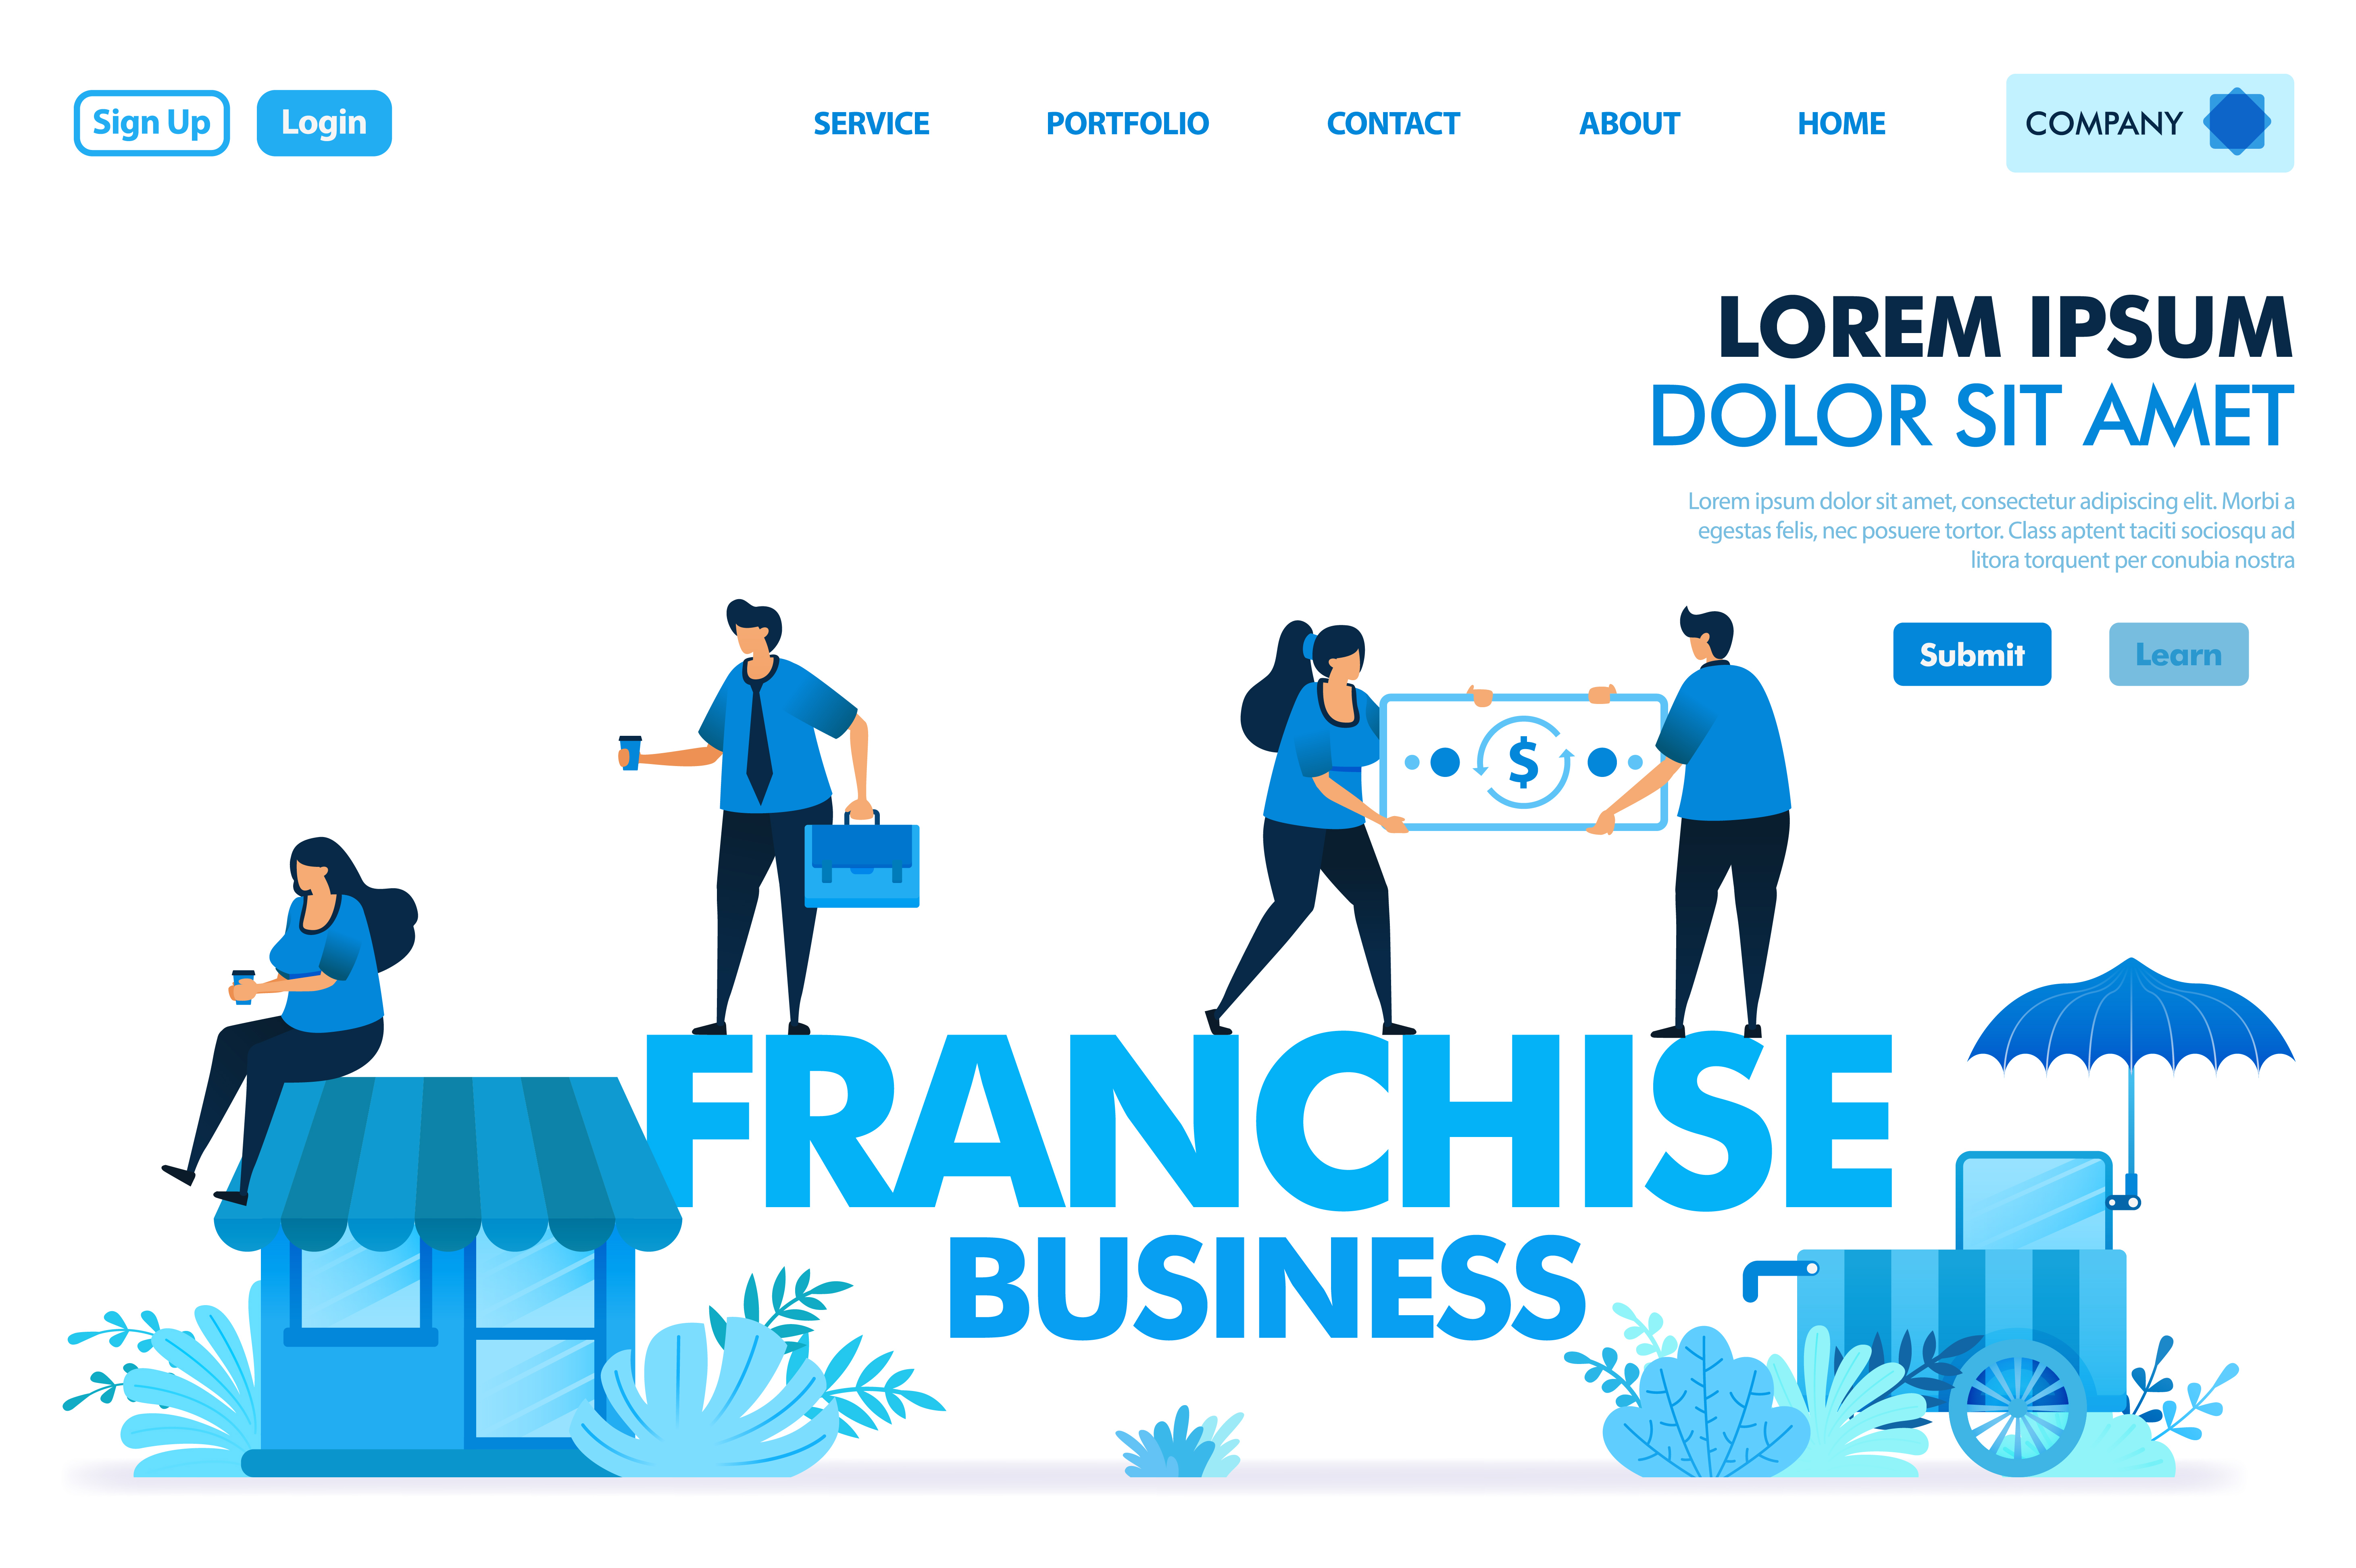 Download Free Illustration Of Franchise Business Graphic By Setiawanarief111 for Cricut Explore, Silhouette and other cutting machines.